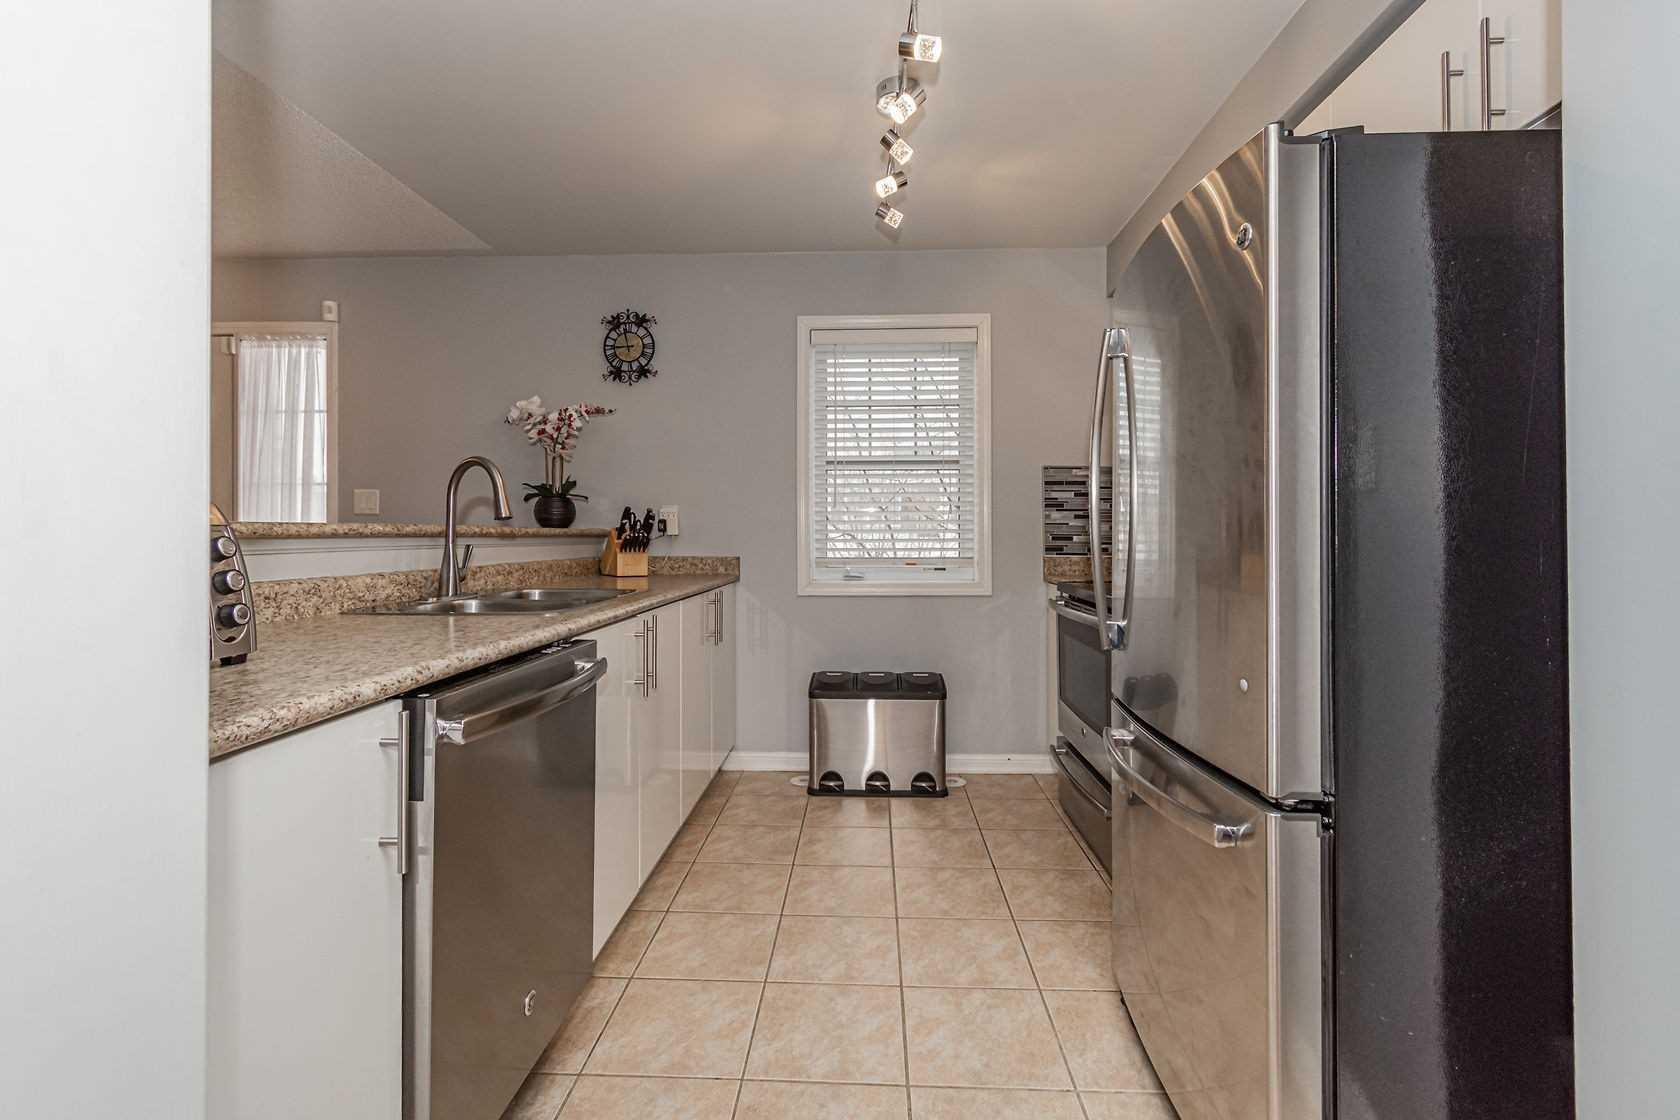 Image 5 of 20 showing inside of 3 Bedroom Att/Row/Twnhouse 3-Storey house for sale at 912 Ambroise Cres, Milton L9T0M2